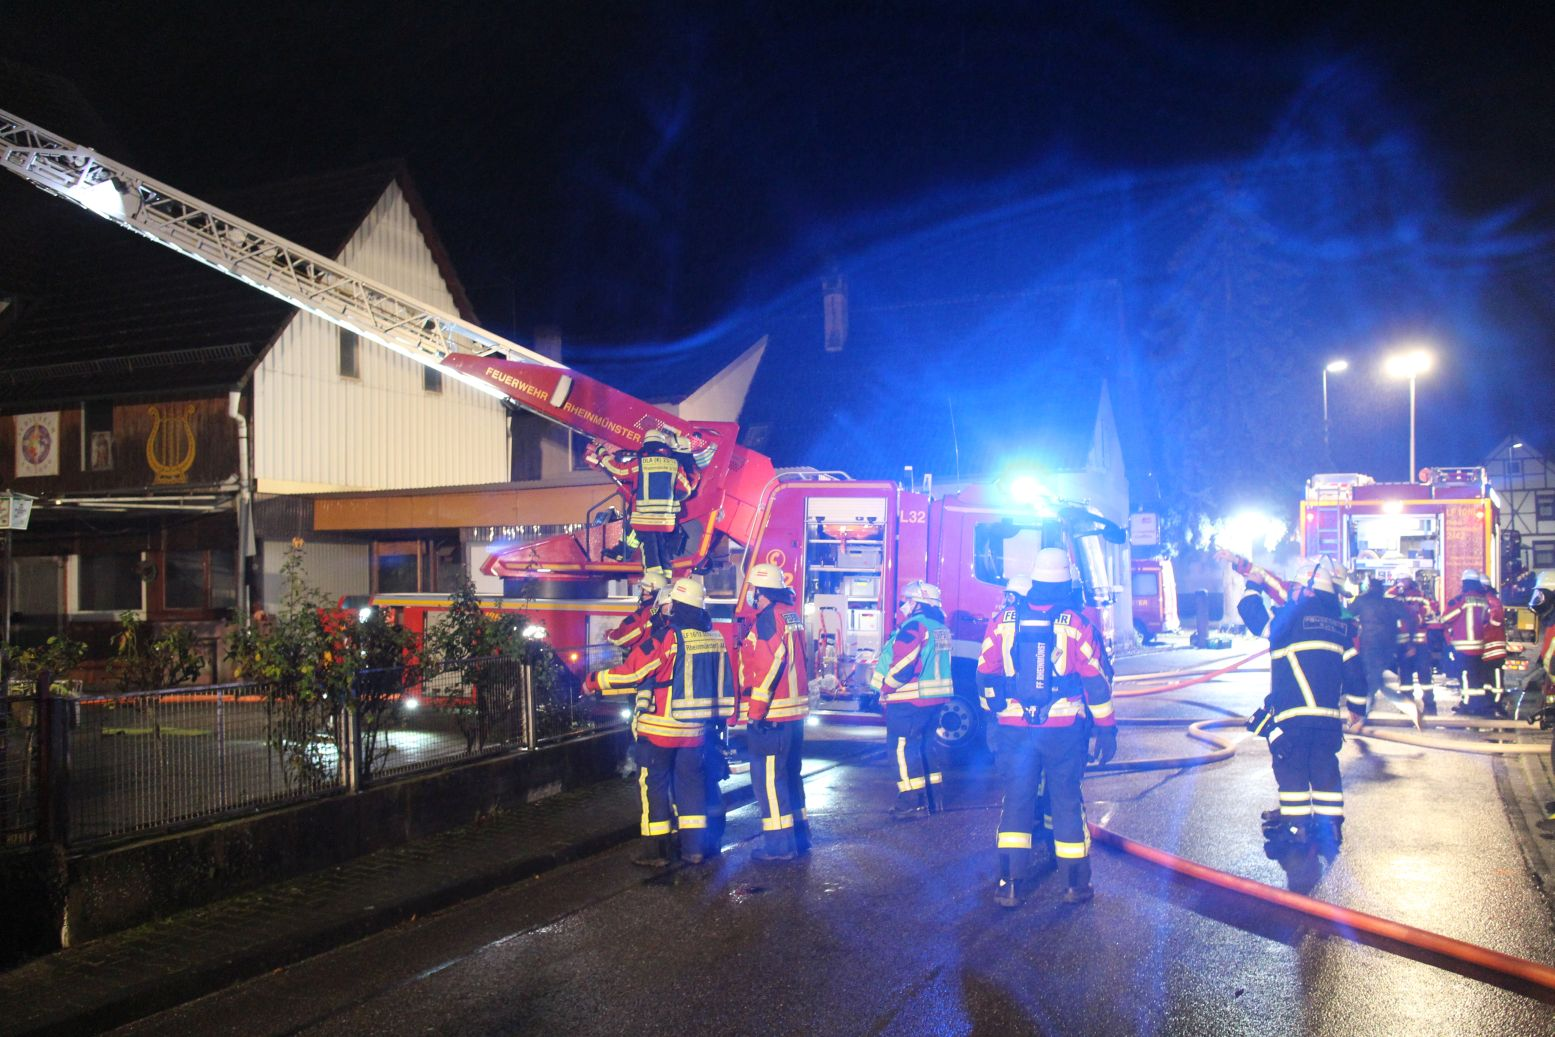 Dachstuhlbrand in Greffern